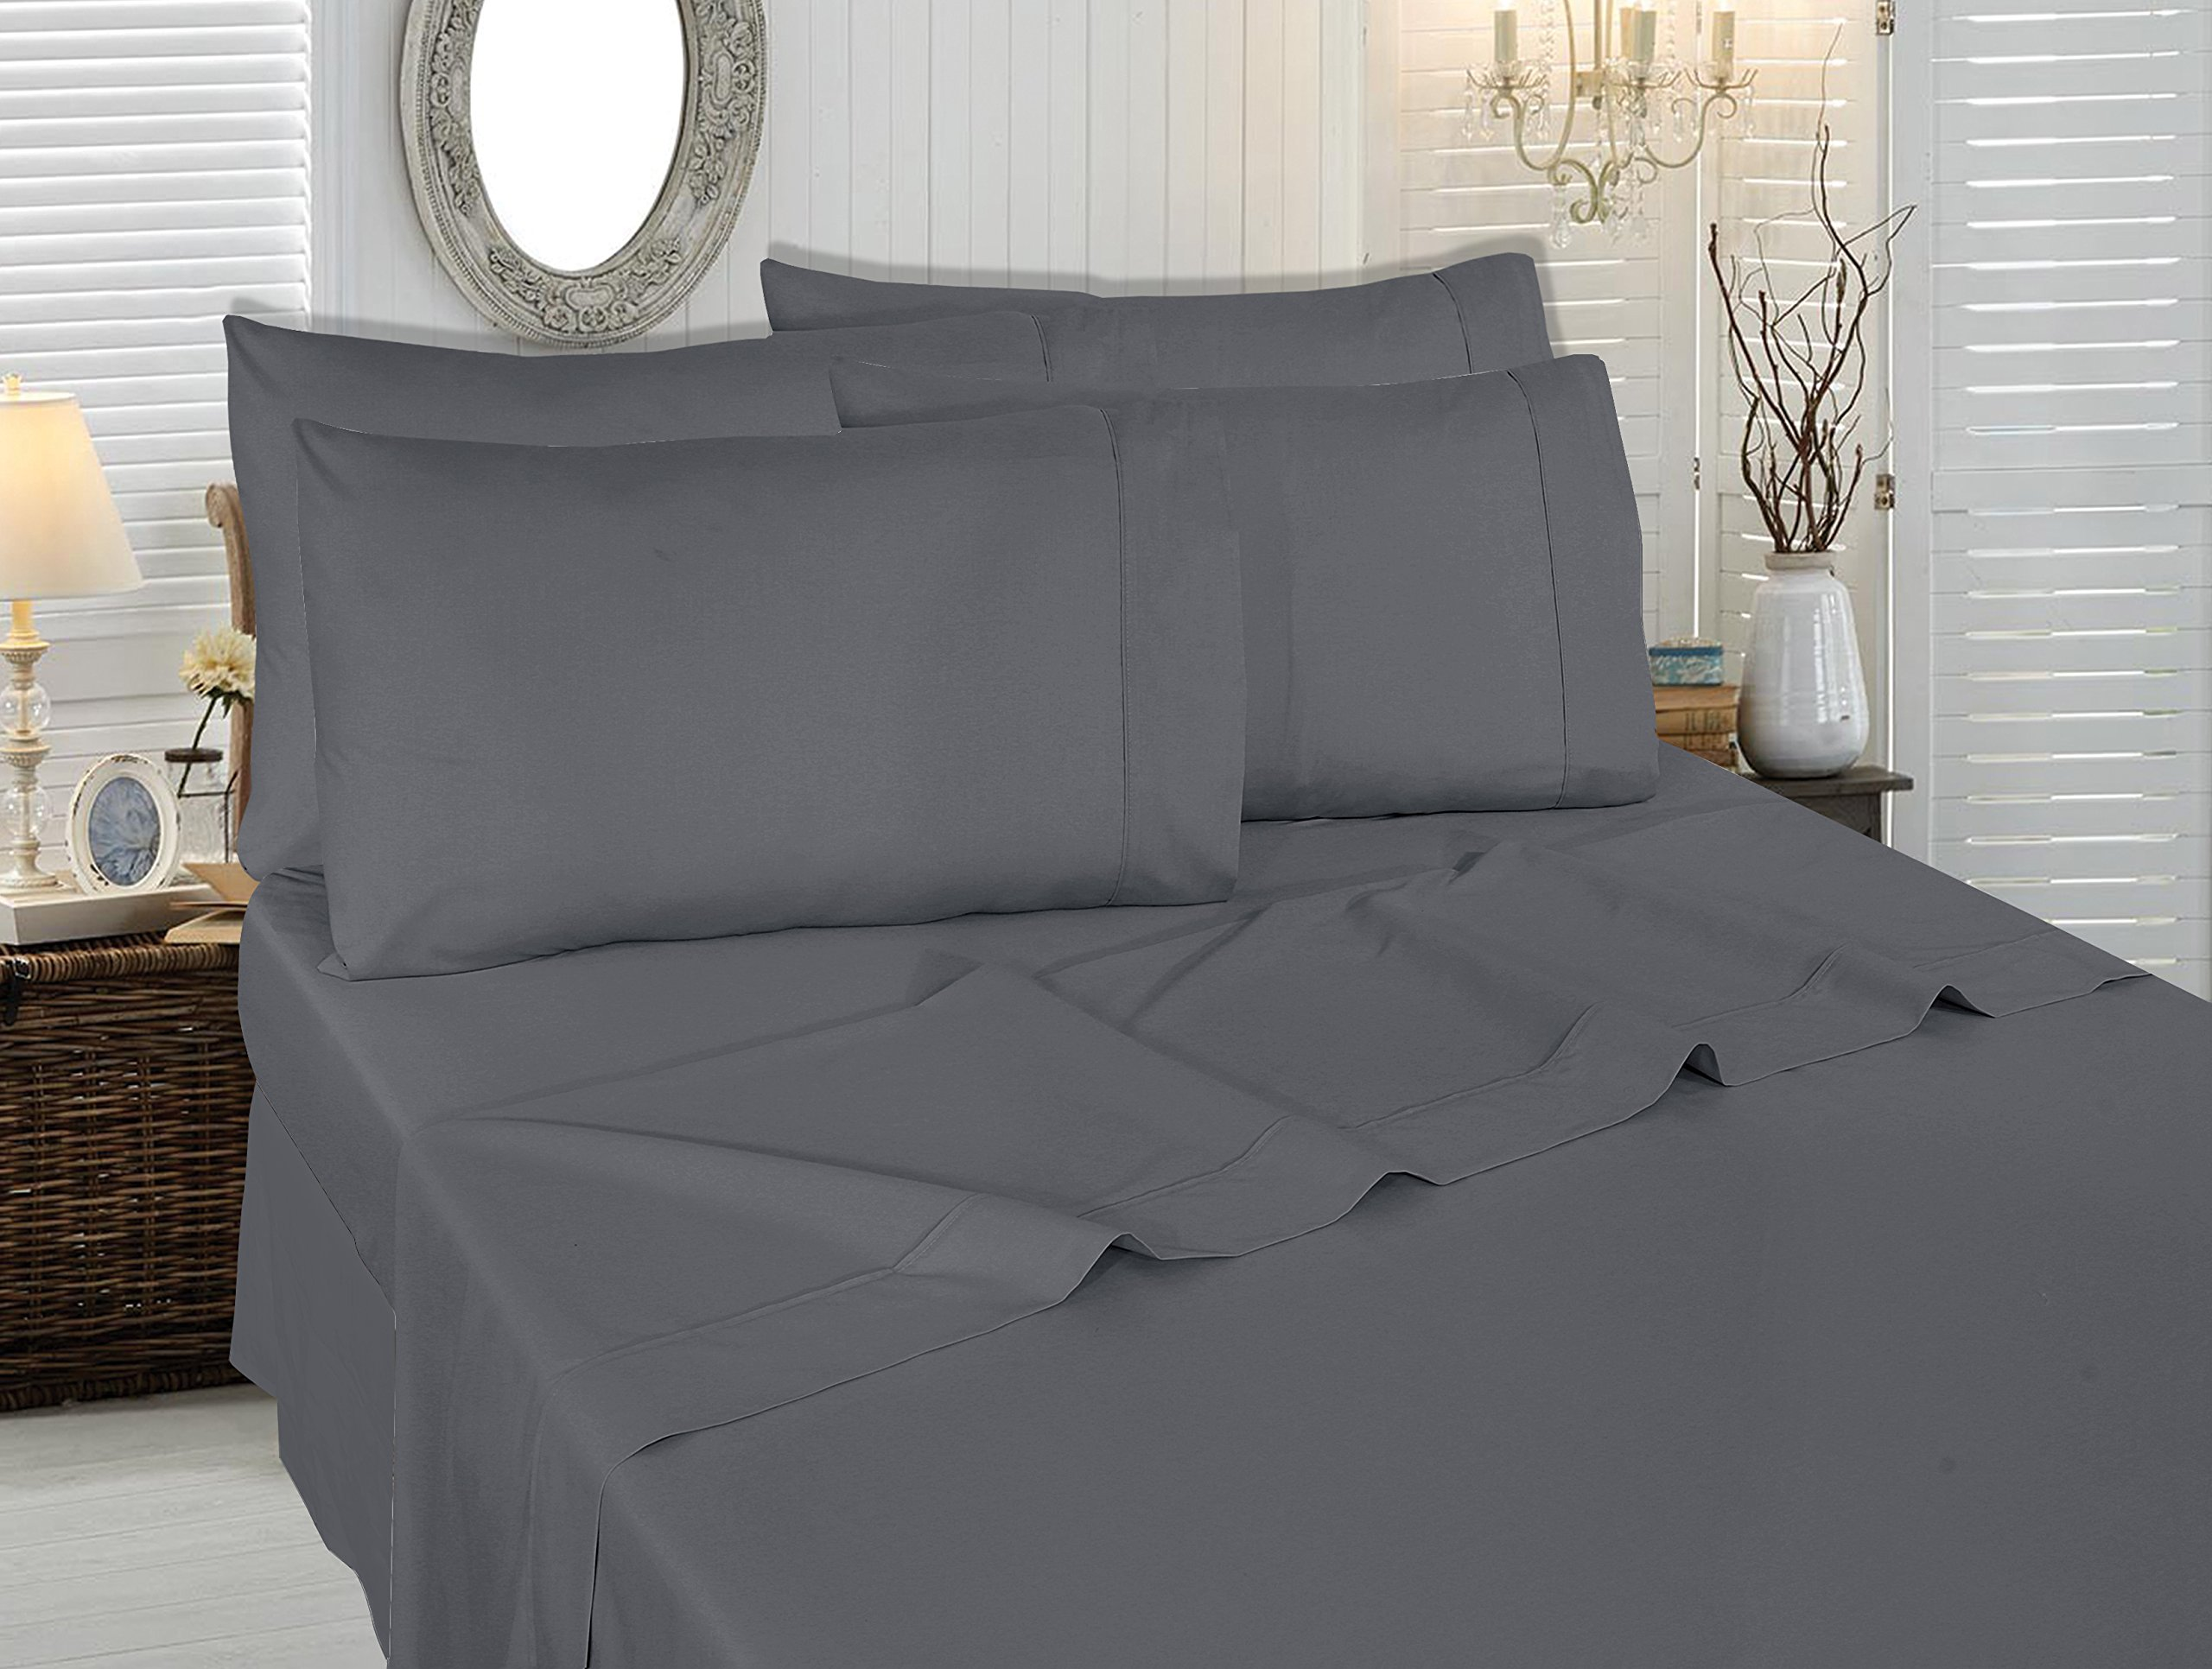 Utopia Bedding 6-Piece Bed Sheet Set (Queen - Grey) with 4 Pillowcases - Soft Brushed Microfiber Wrinkle, Fade and Stain Resistant Sheet Set - Includes 1 flat sheet measuring 90 by 102 inches with a 4 inches self-hem; 1 fitted sheet measuring 60 by 80 inches with a 16 inches box and 4 pillowcases measuring 20 by 30 inches each Brushed microfiber fabric makes the sheet set exceptionally soft Smooth feel of the sheet is very cozy which keeps you cool during summers and warm during winters - sheet-sets, bedroom-sheets-comforters, bedroom - 81sxYa3NzaL -